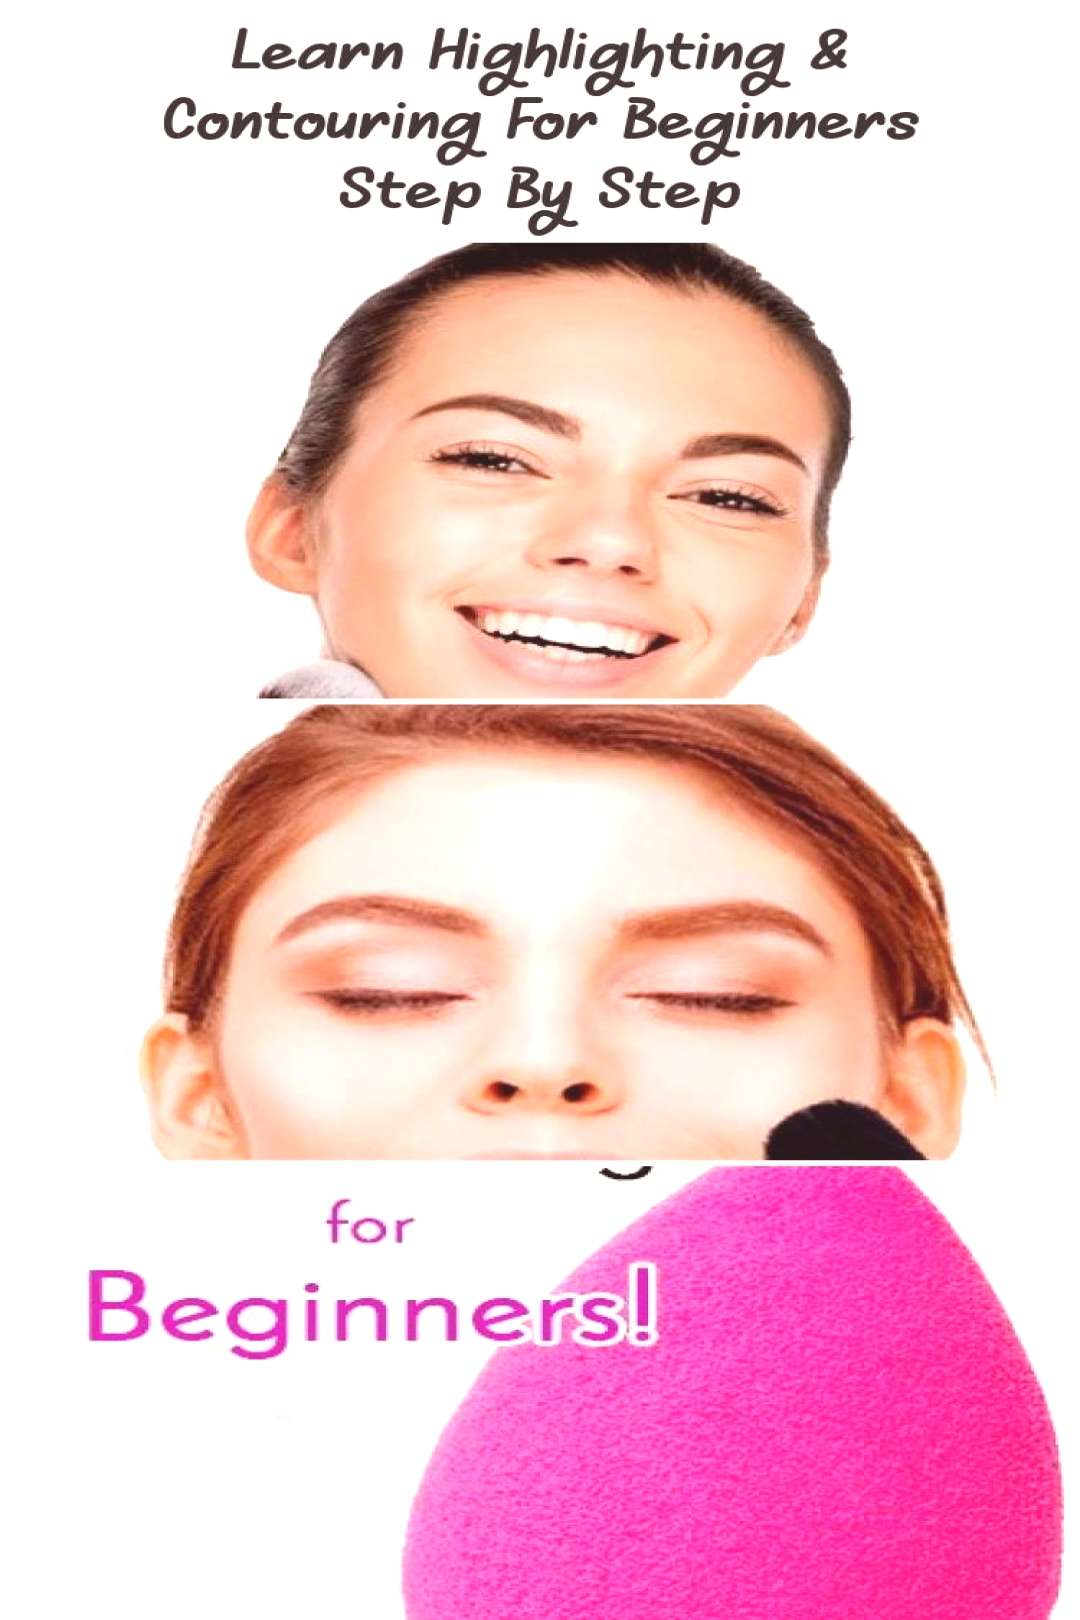 Learn Highlighting & Contouring For Beginners Step By Step… - Sky's Blog#beginners